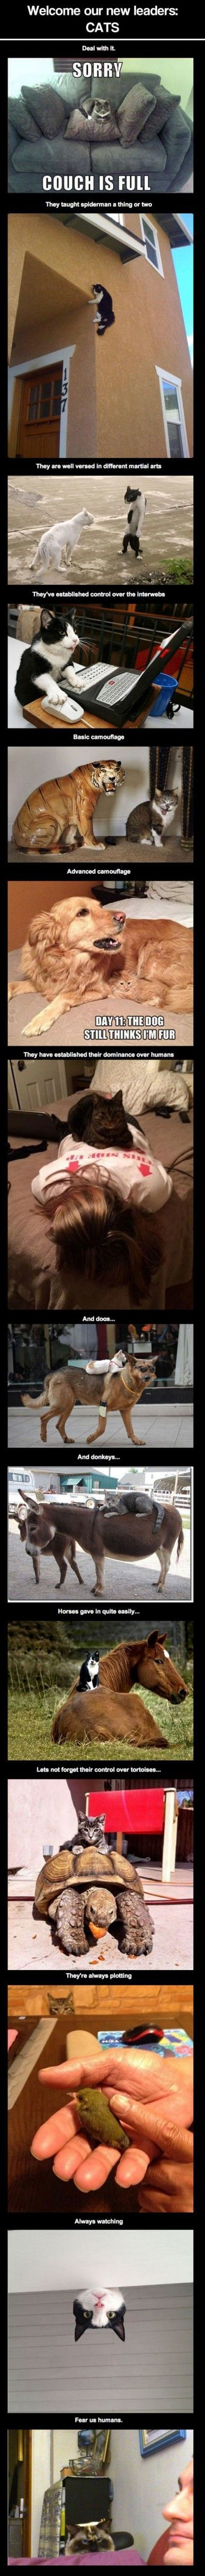 top 50 #funny #humor Animals, Quotes and picture